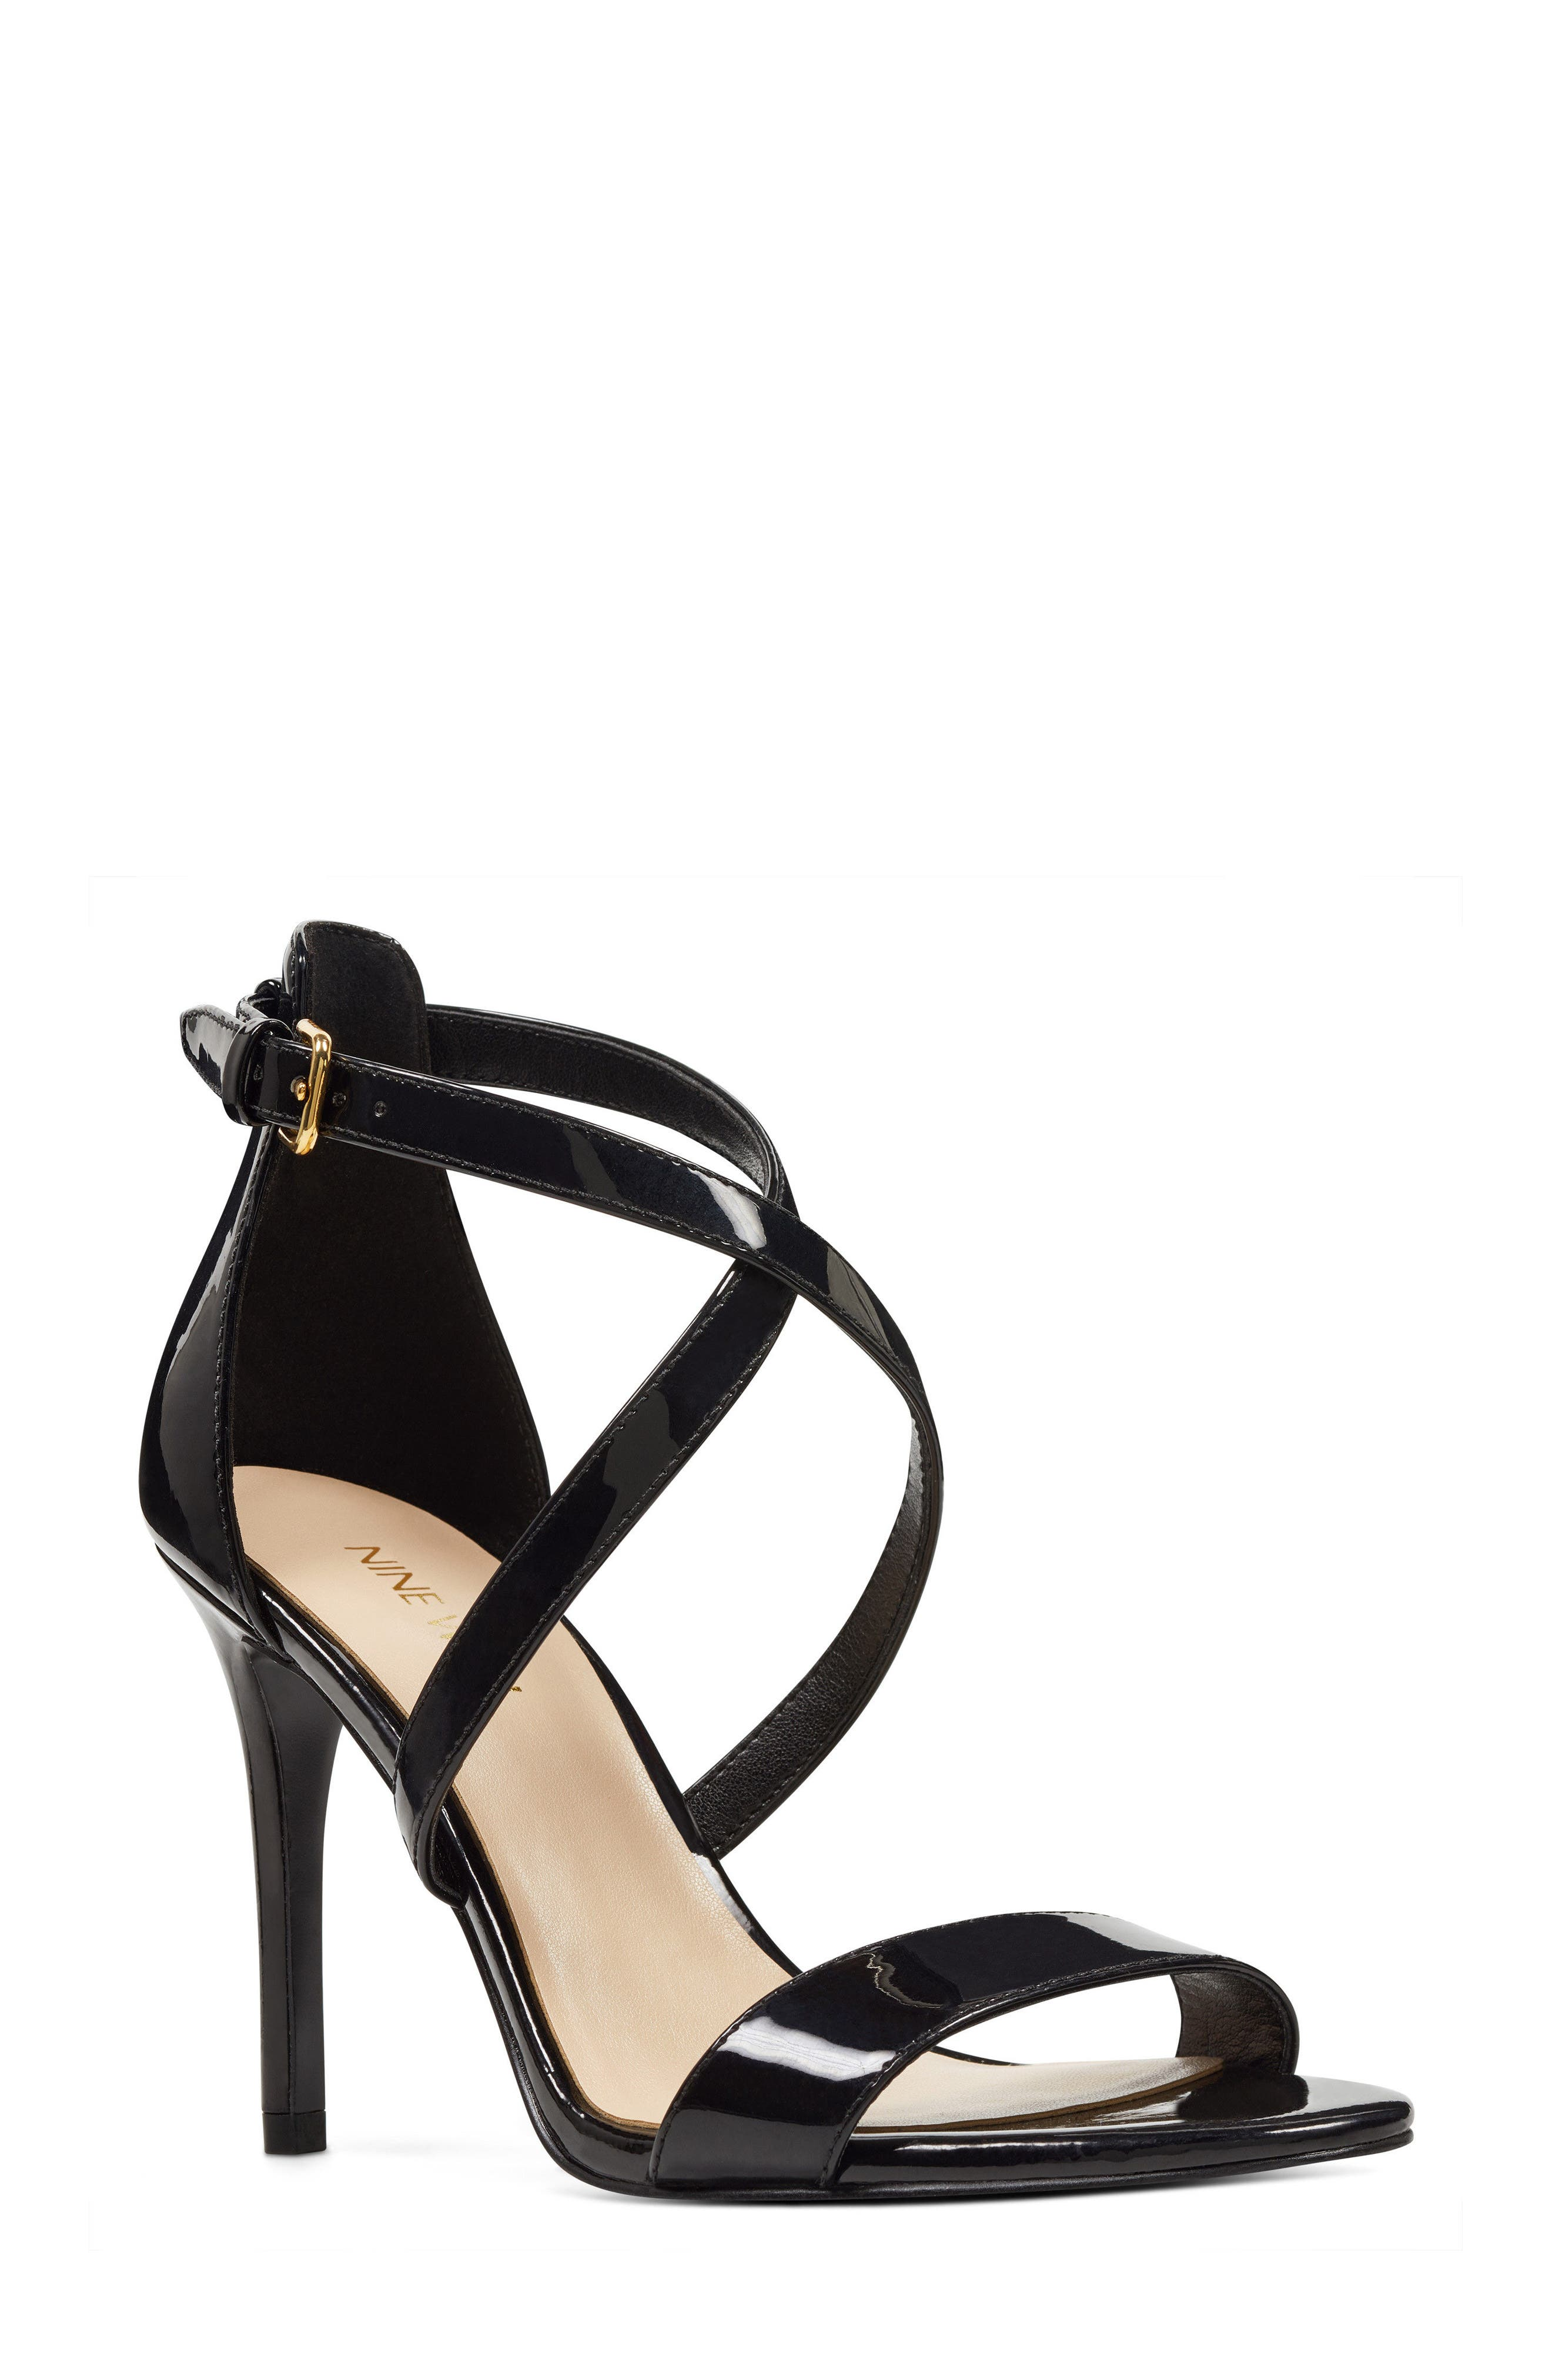 Mydebut Strappy Sandal,                         Main,                         color, BLACK FAUX LEATHER